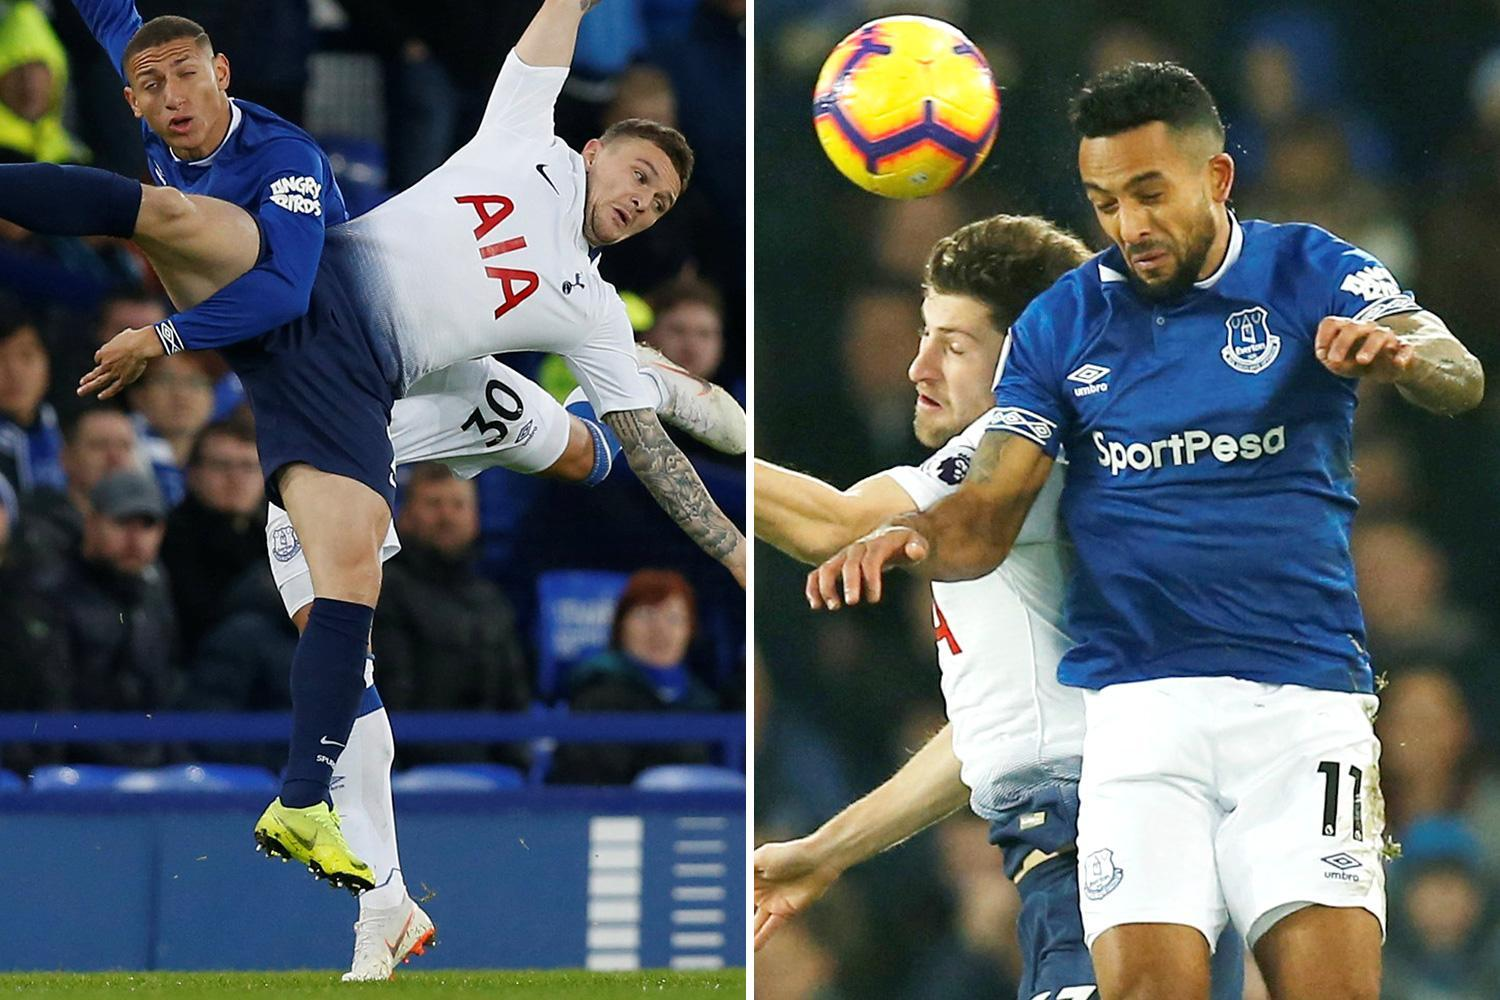 Everton 1-3 Tottenham LIVE SCORE: Son, Alli and Kane secure stunning turnaround to give Spurs commanding lead